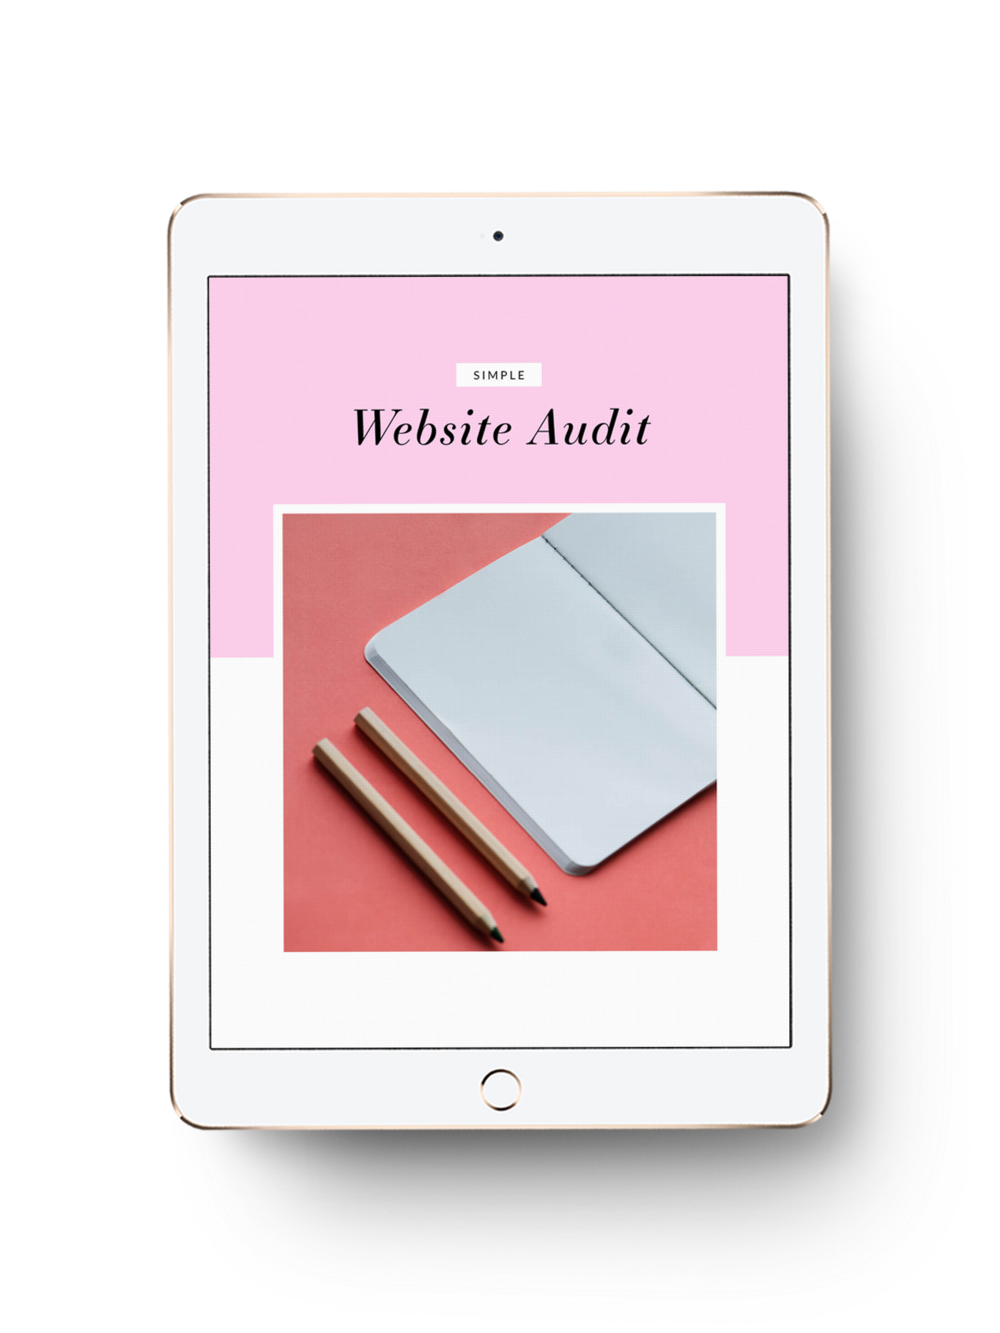 Free website audit template - mocked up on an iPad